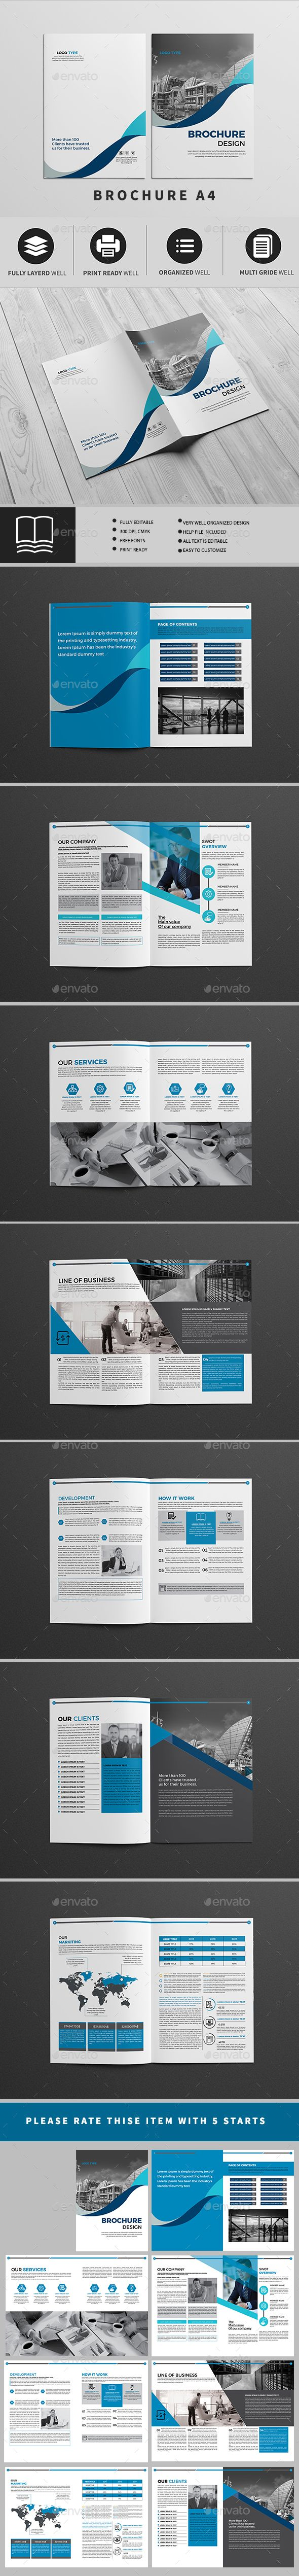 Brochure Template - Brochures Print Templates Download here : https://graphicriver.net/item/brochure-template/19486897?s_rank=4&ref=Al-fatih